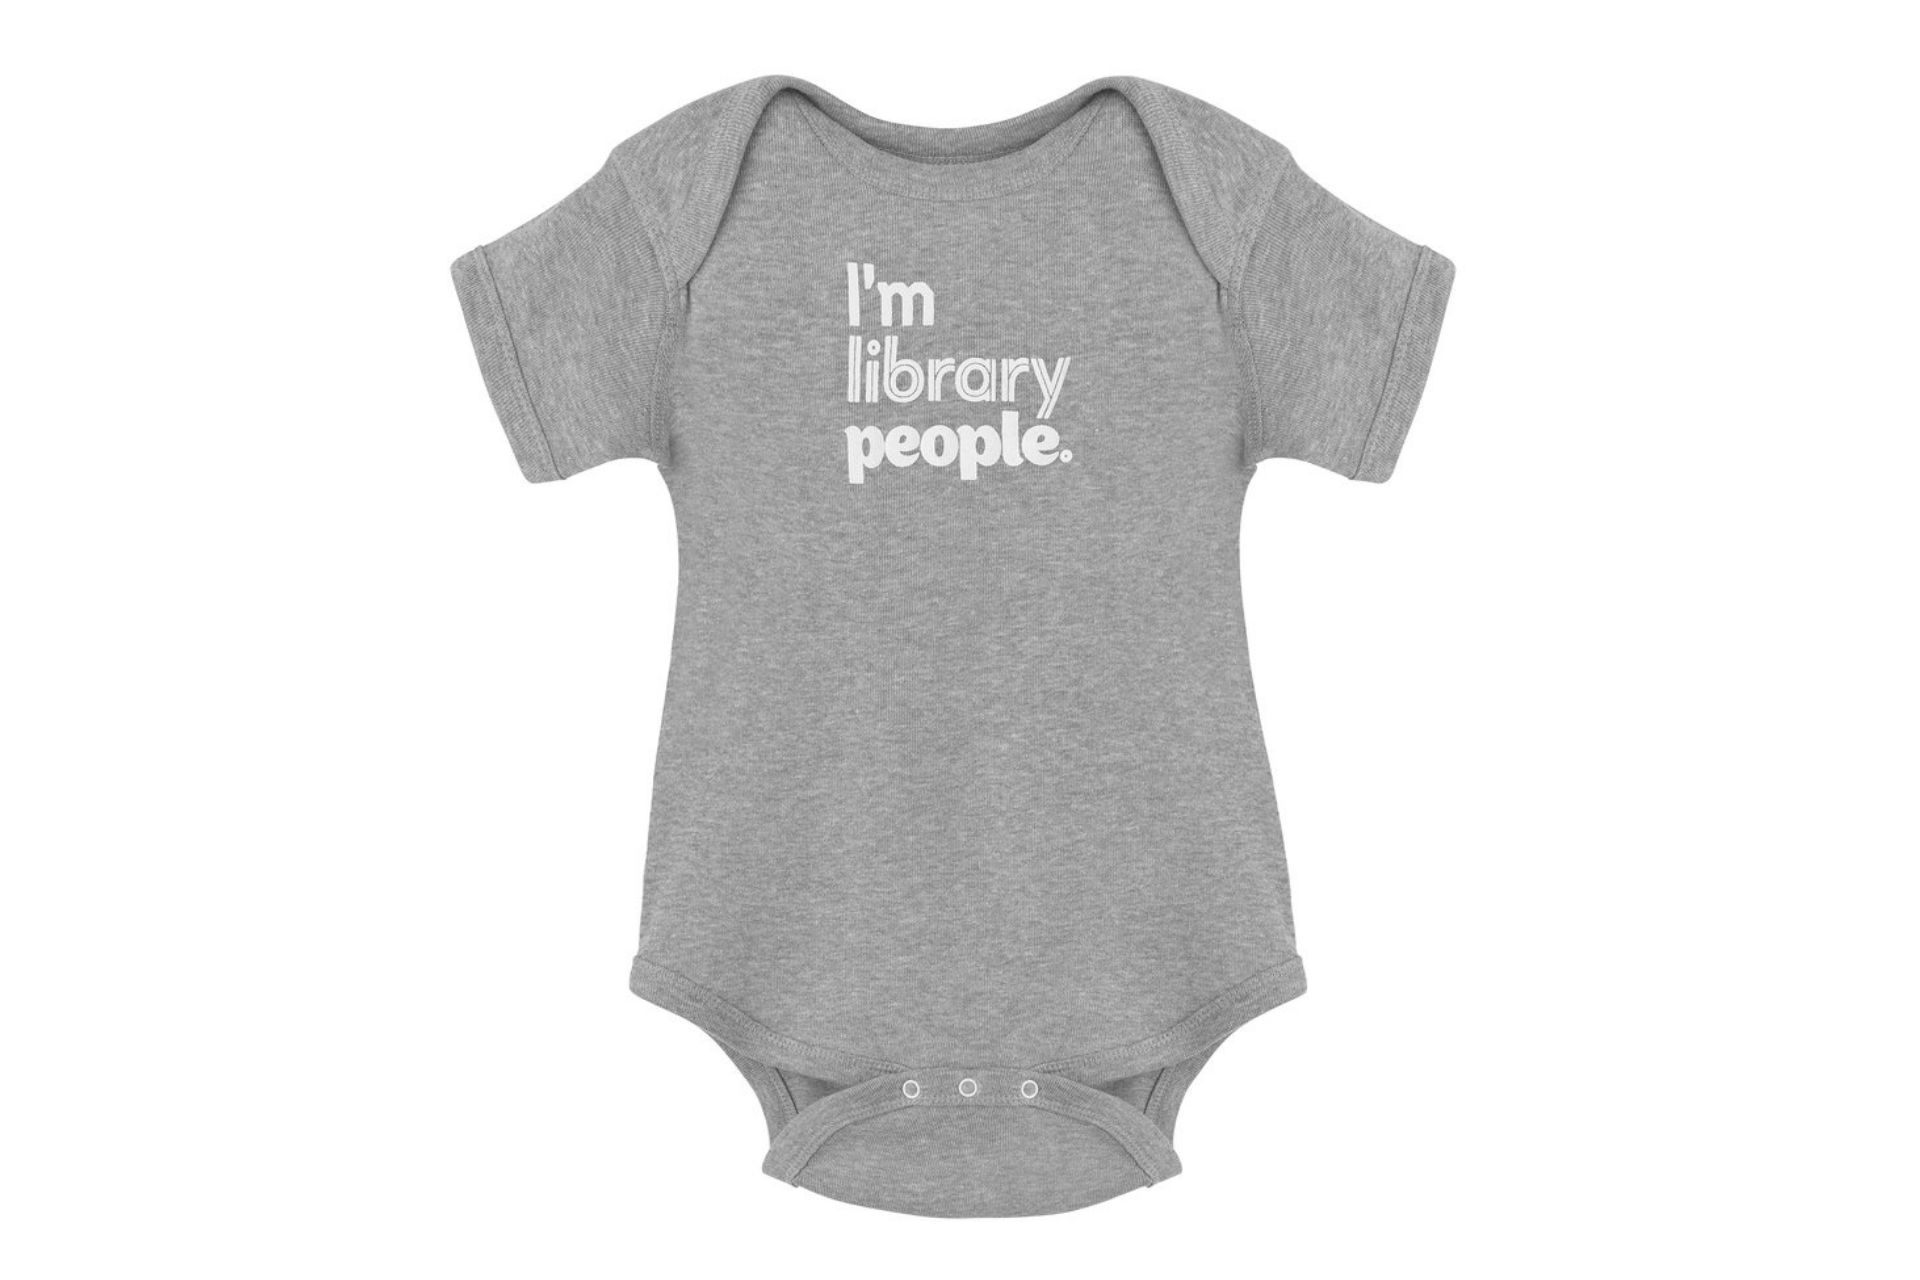 Toronto Public Library Foundation I'm Library People baby onesie